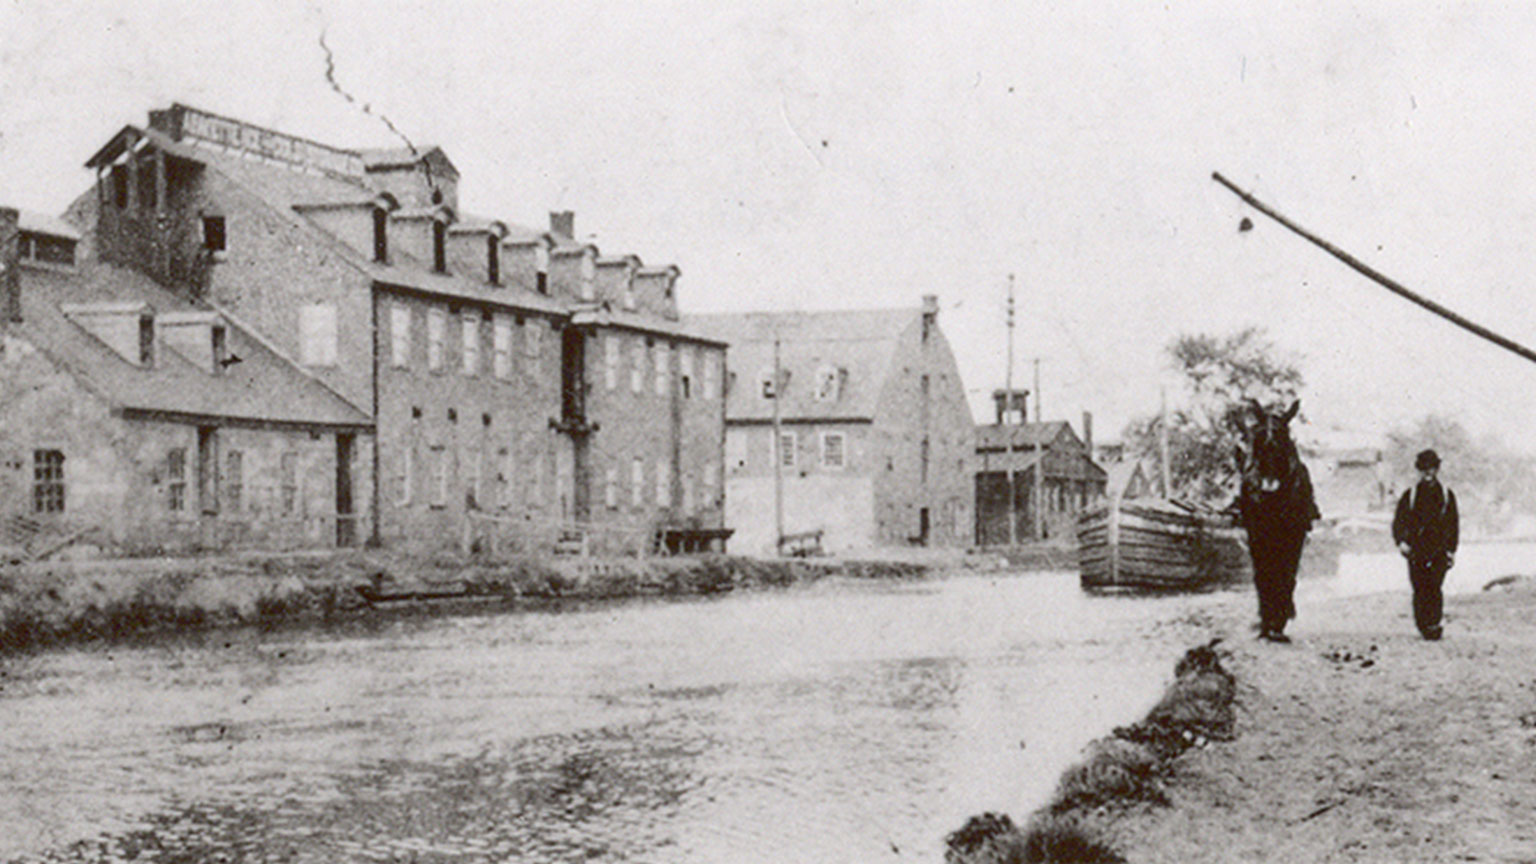 The businesses along Abbott St. were right against the canal for easy access.